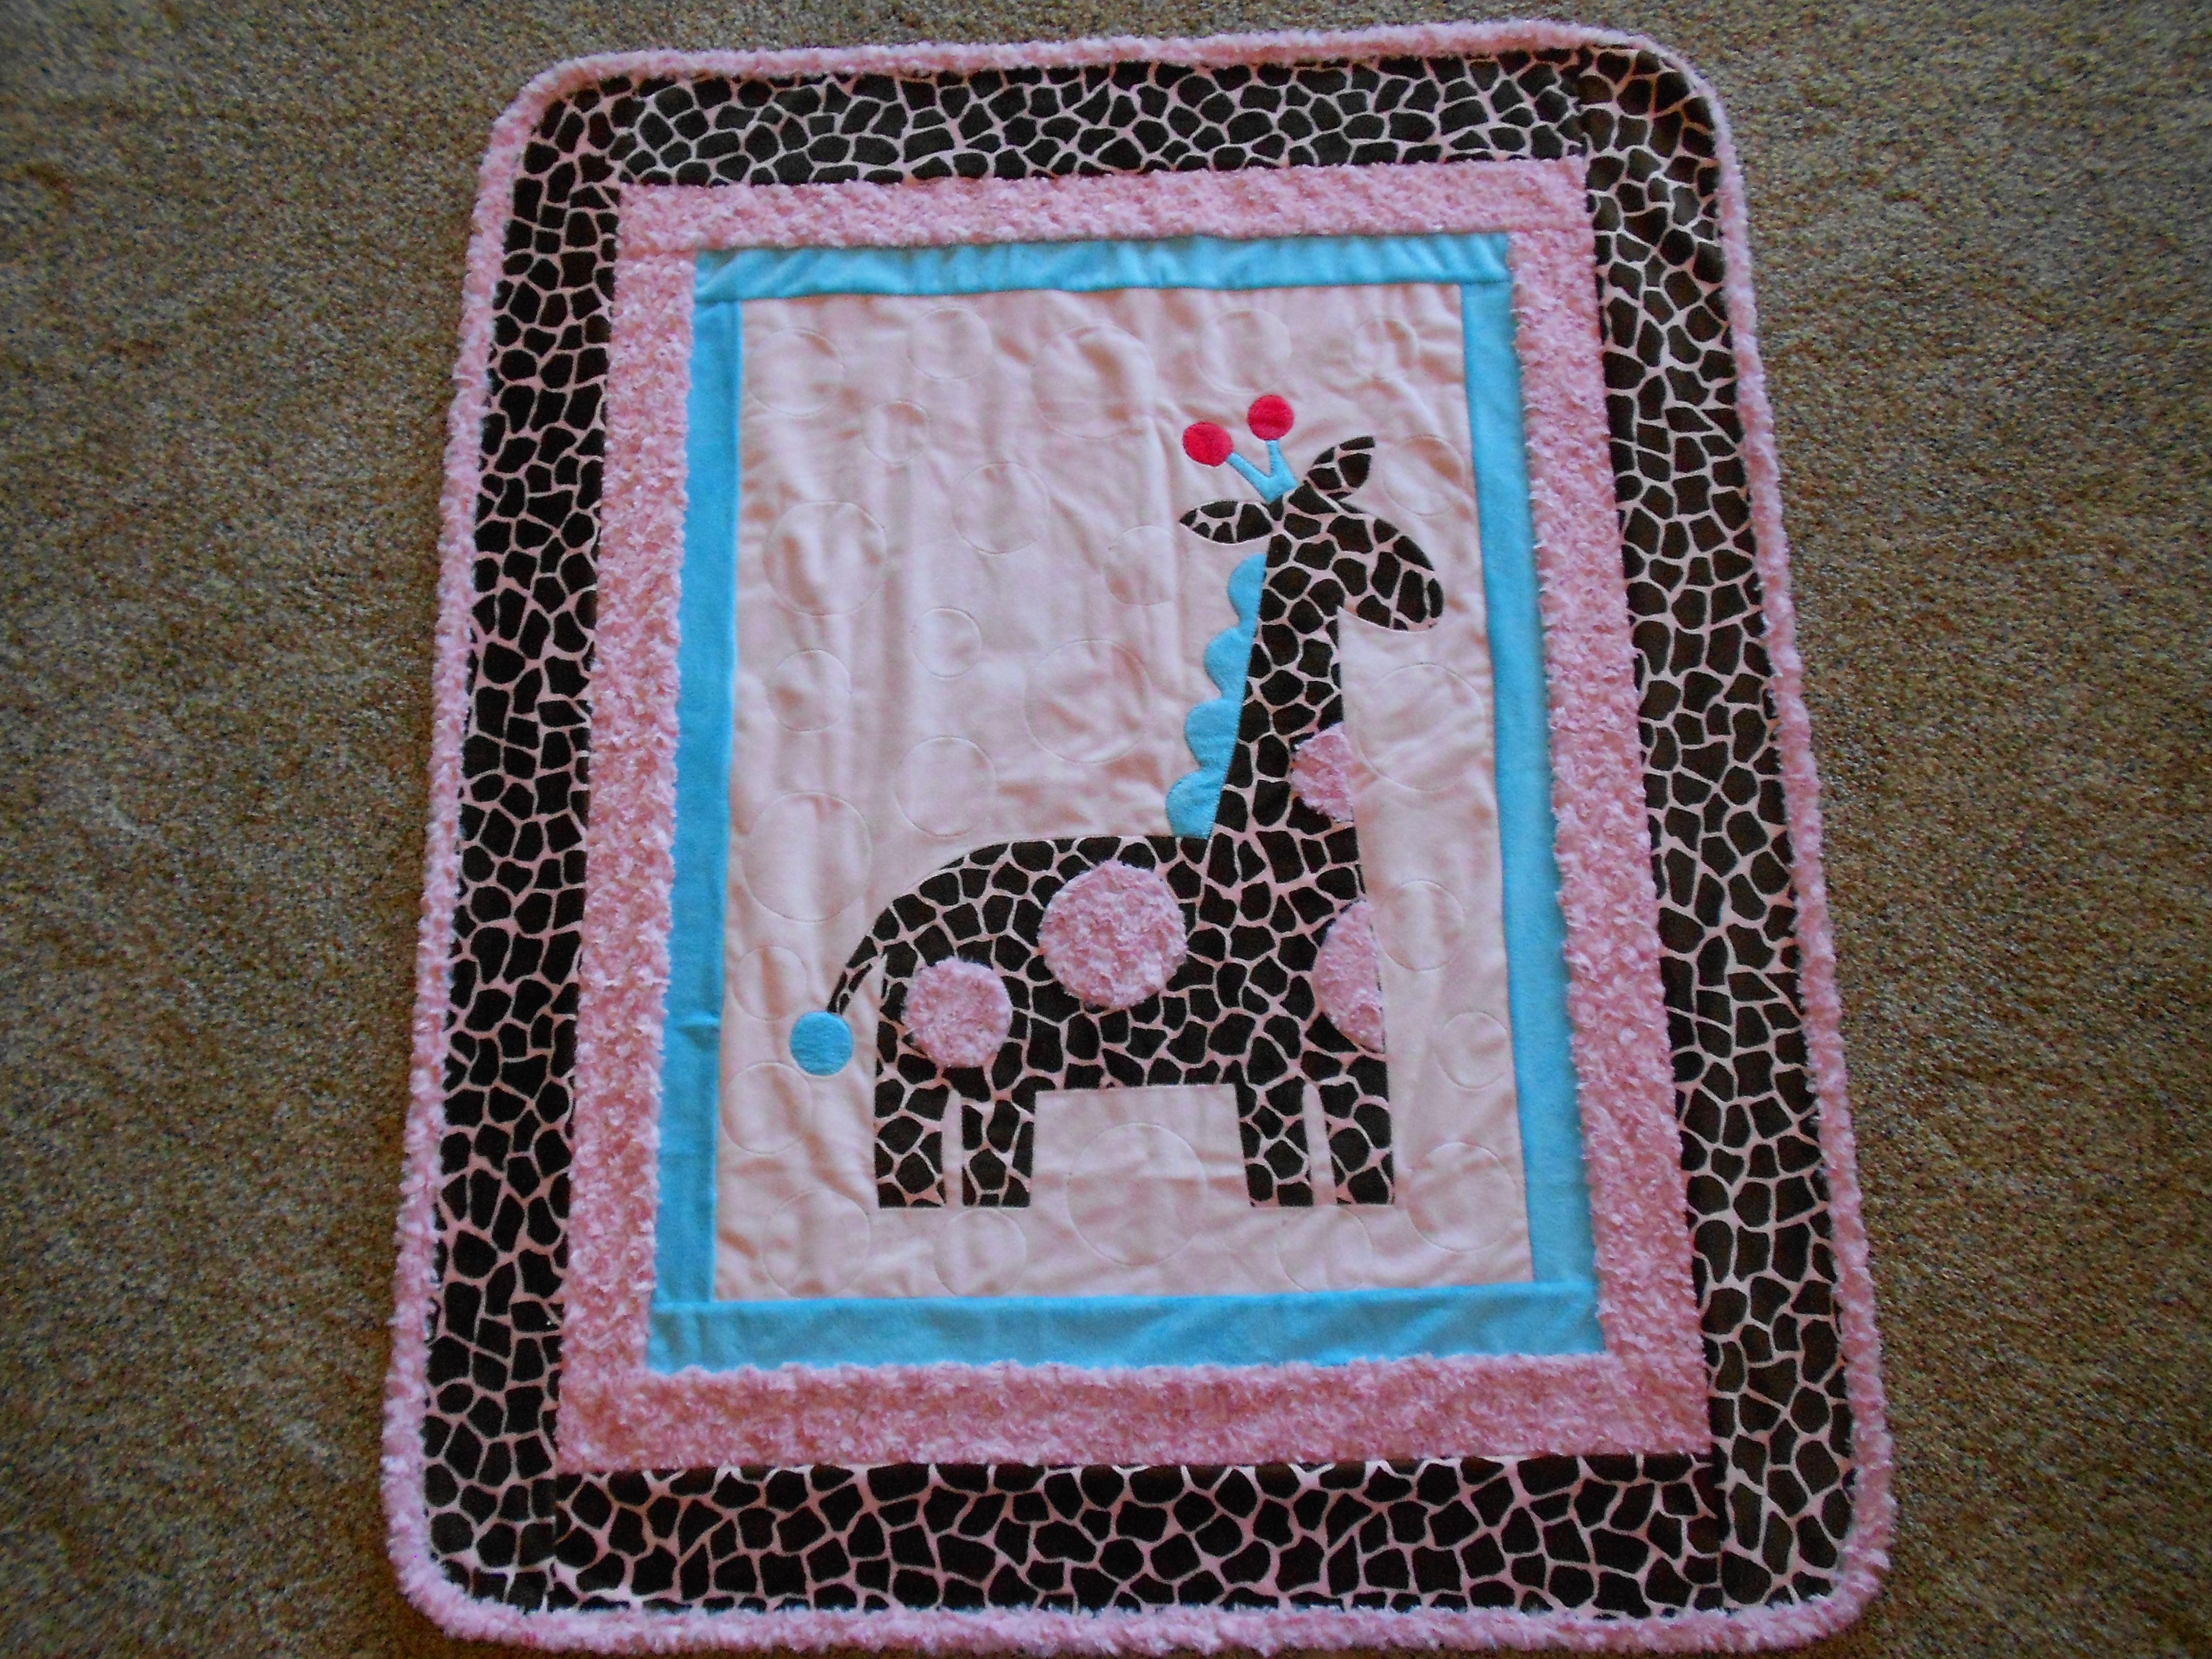 Cuddle Giraffe Minky Quilt by Shannon Fabrics Made for our great-granddaughter, Marita, when she was born.